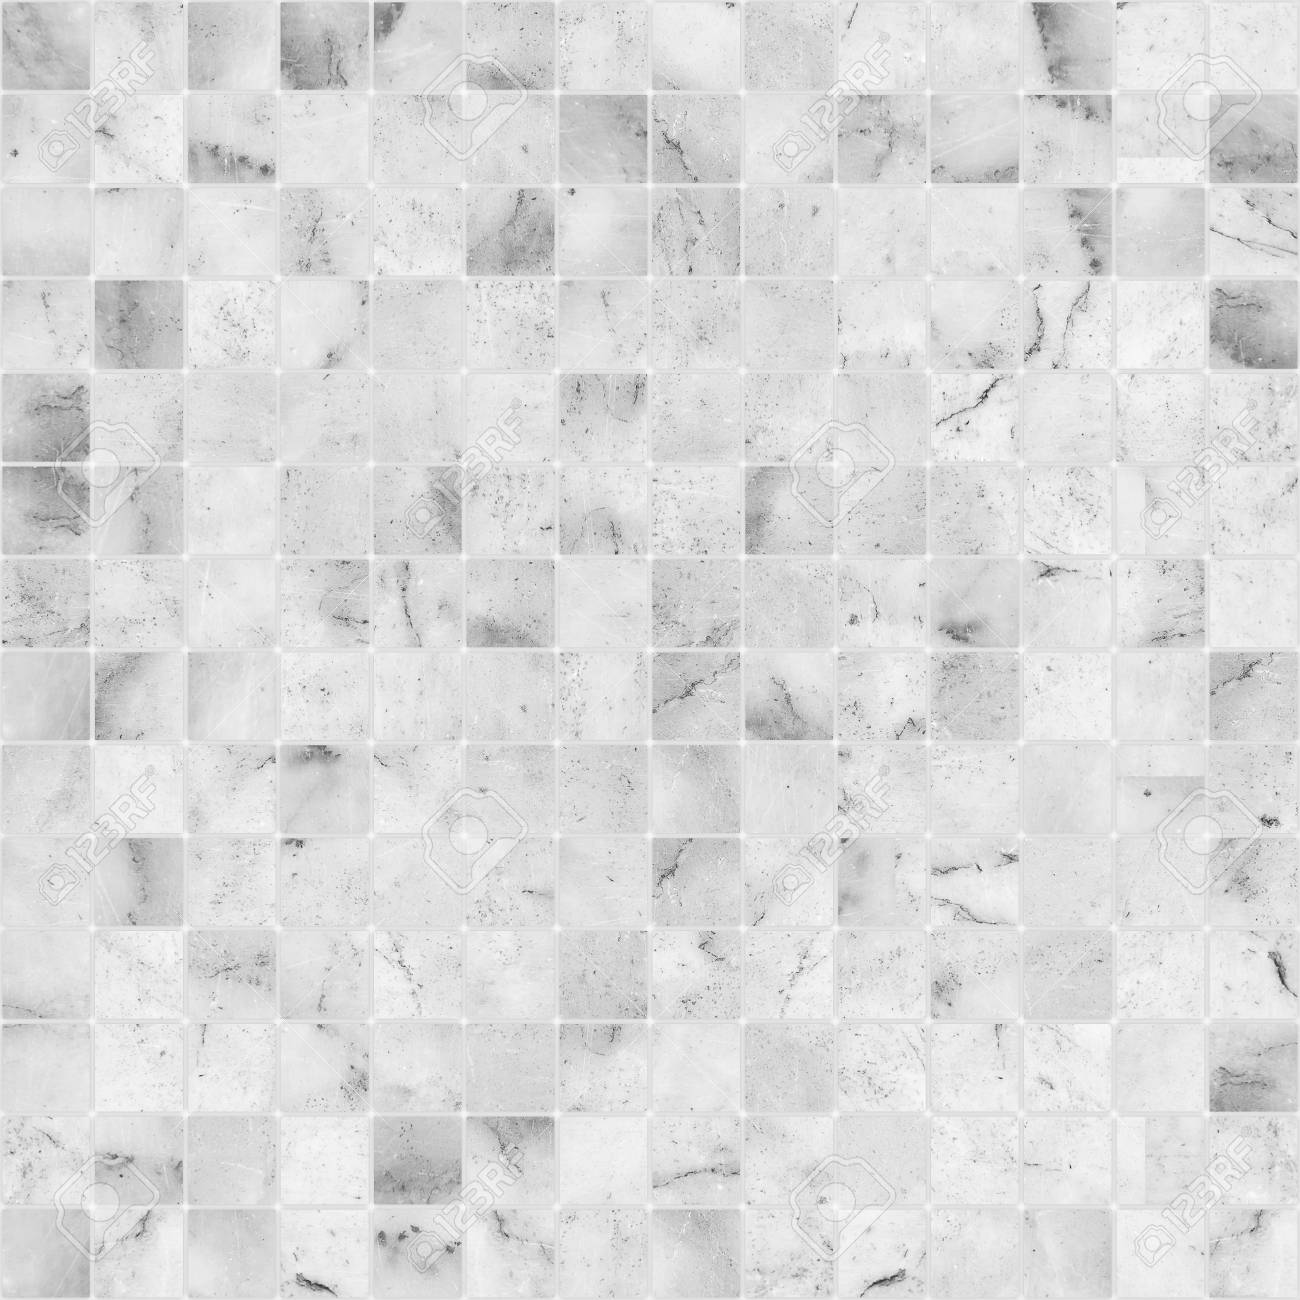 White Mosaic Marble Tile Texture Seamless Stock Photo Picture And Royalty Free Image Image 70887659